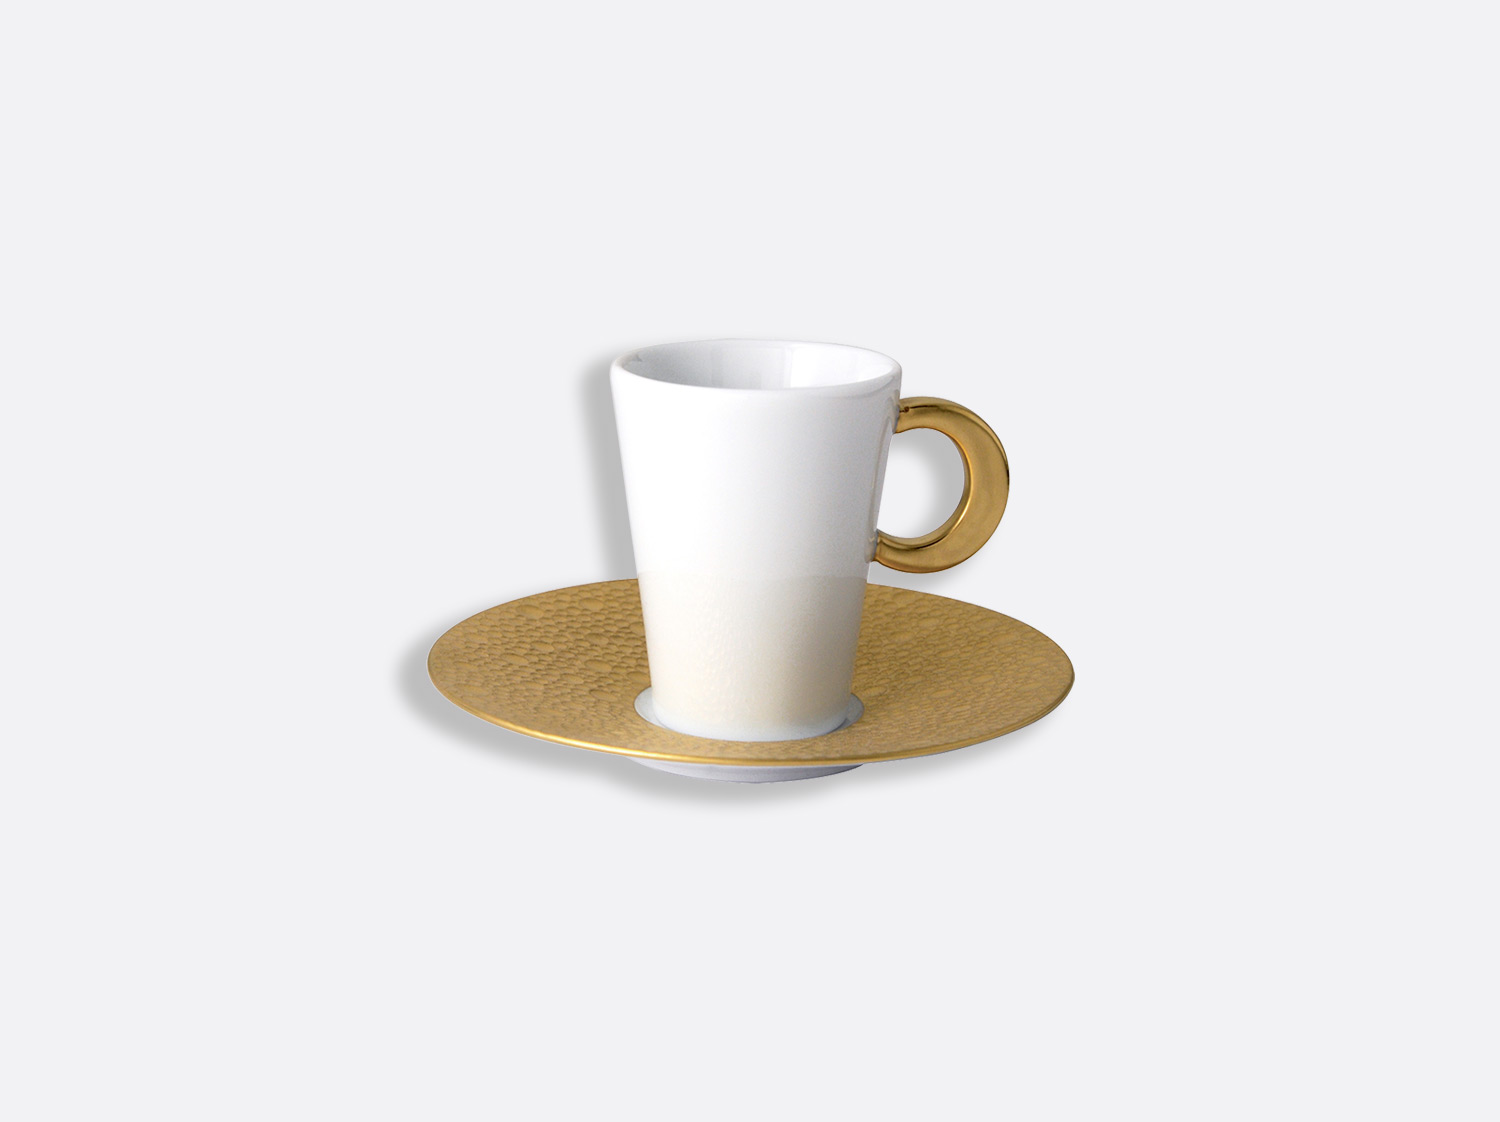 Tasse et soucoupe café 8 cl en porcelaine de la collection Ecume or Bernardaud